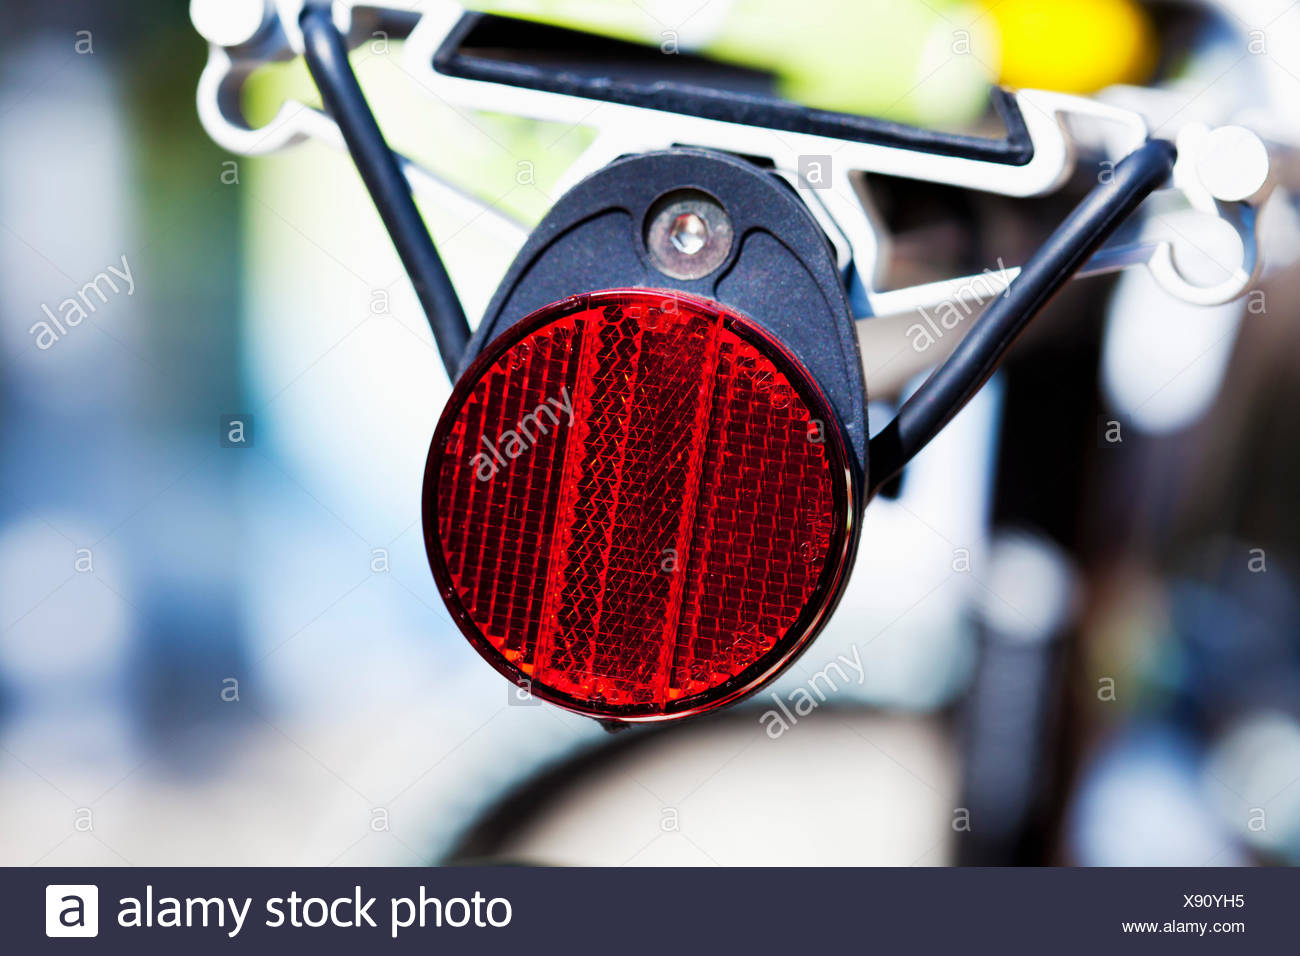 Rear reflector and rack of a mountainbike - Stock Image